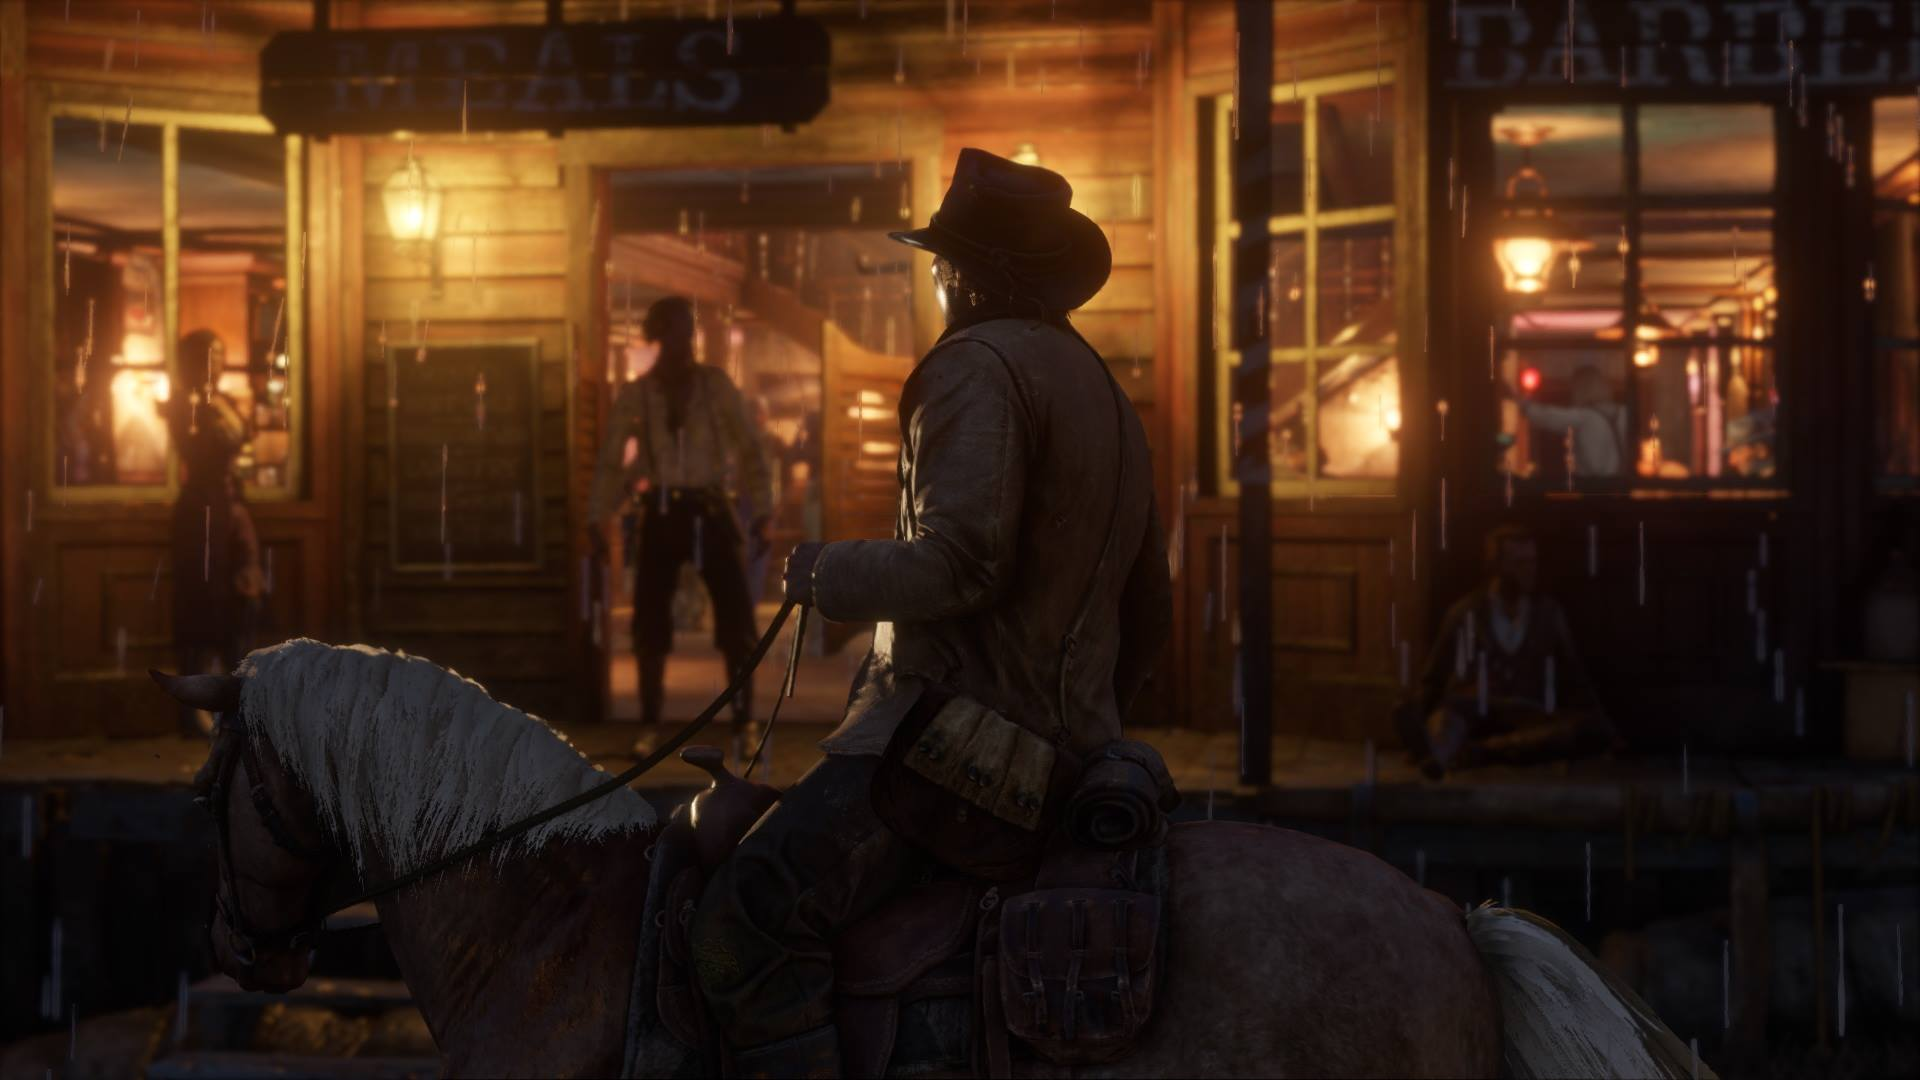 f1fd6178321615a9d7a6198816891709.jpg - Red Dead Redemption 2